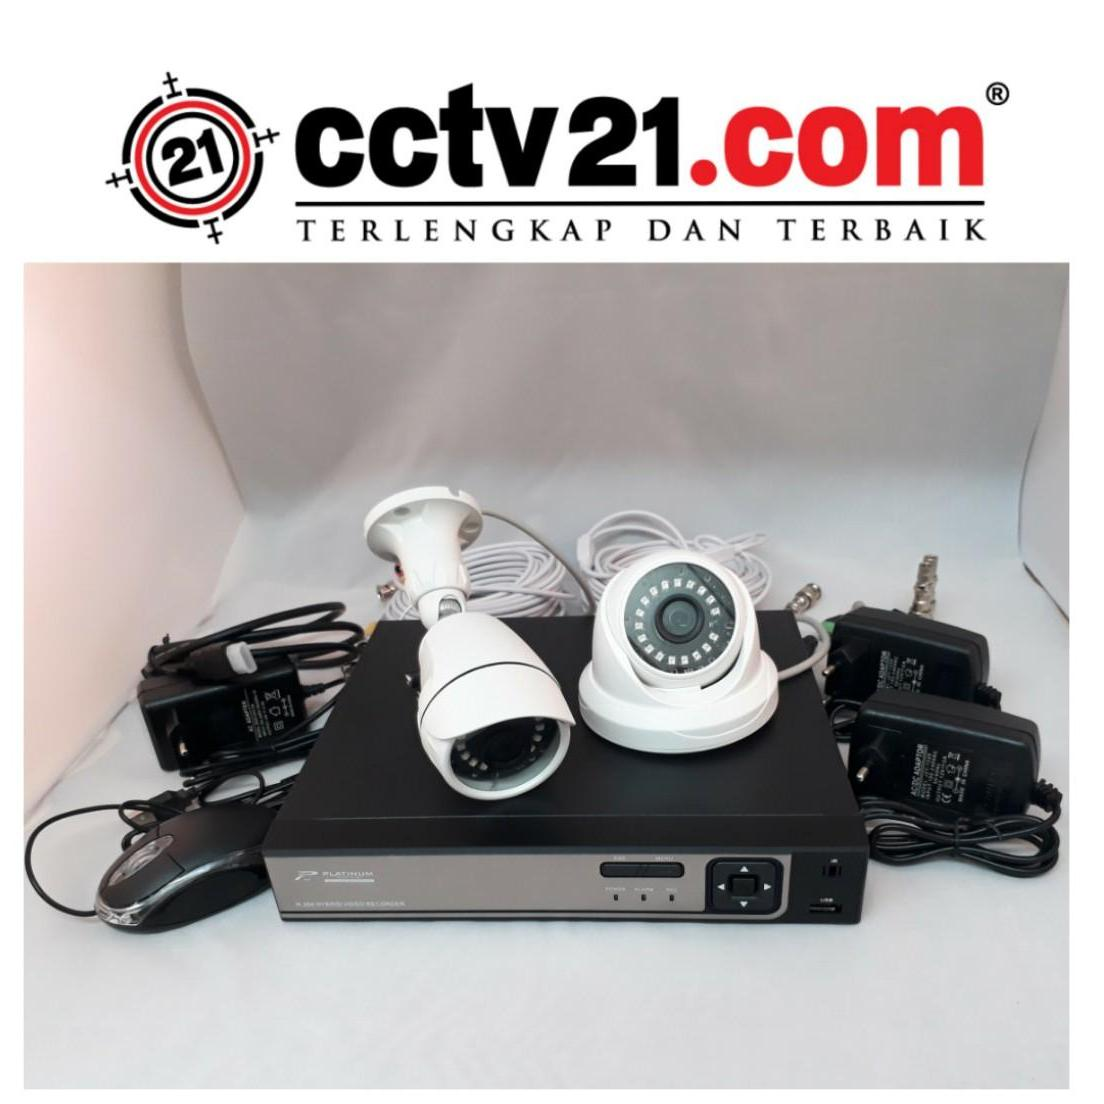 Promo Paket 2 CCTV HD 2MP 1 Camera In - 1 Camera Out +2 Adp 2A+20mtr Kabel -DVR Full HD 4 ch 5 in 1